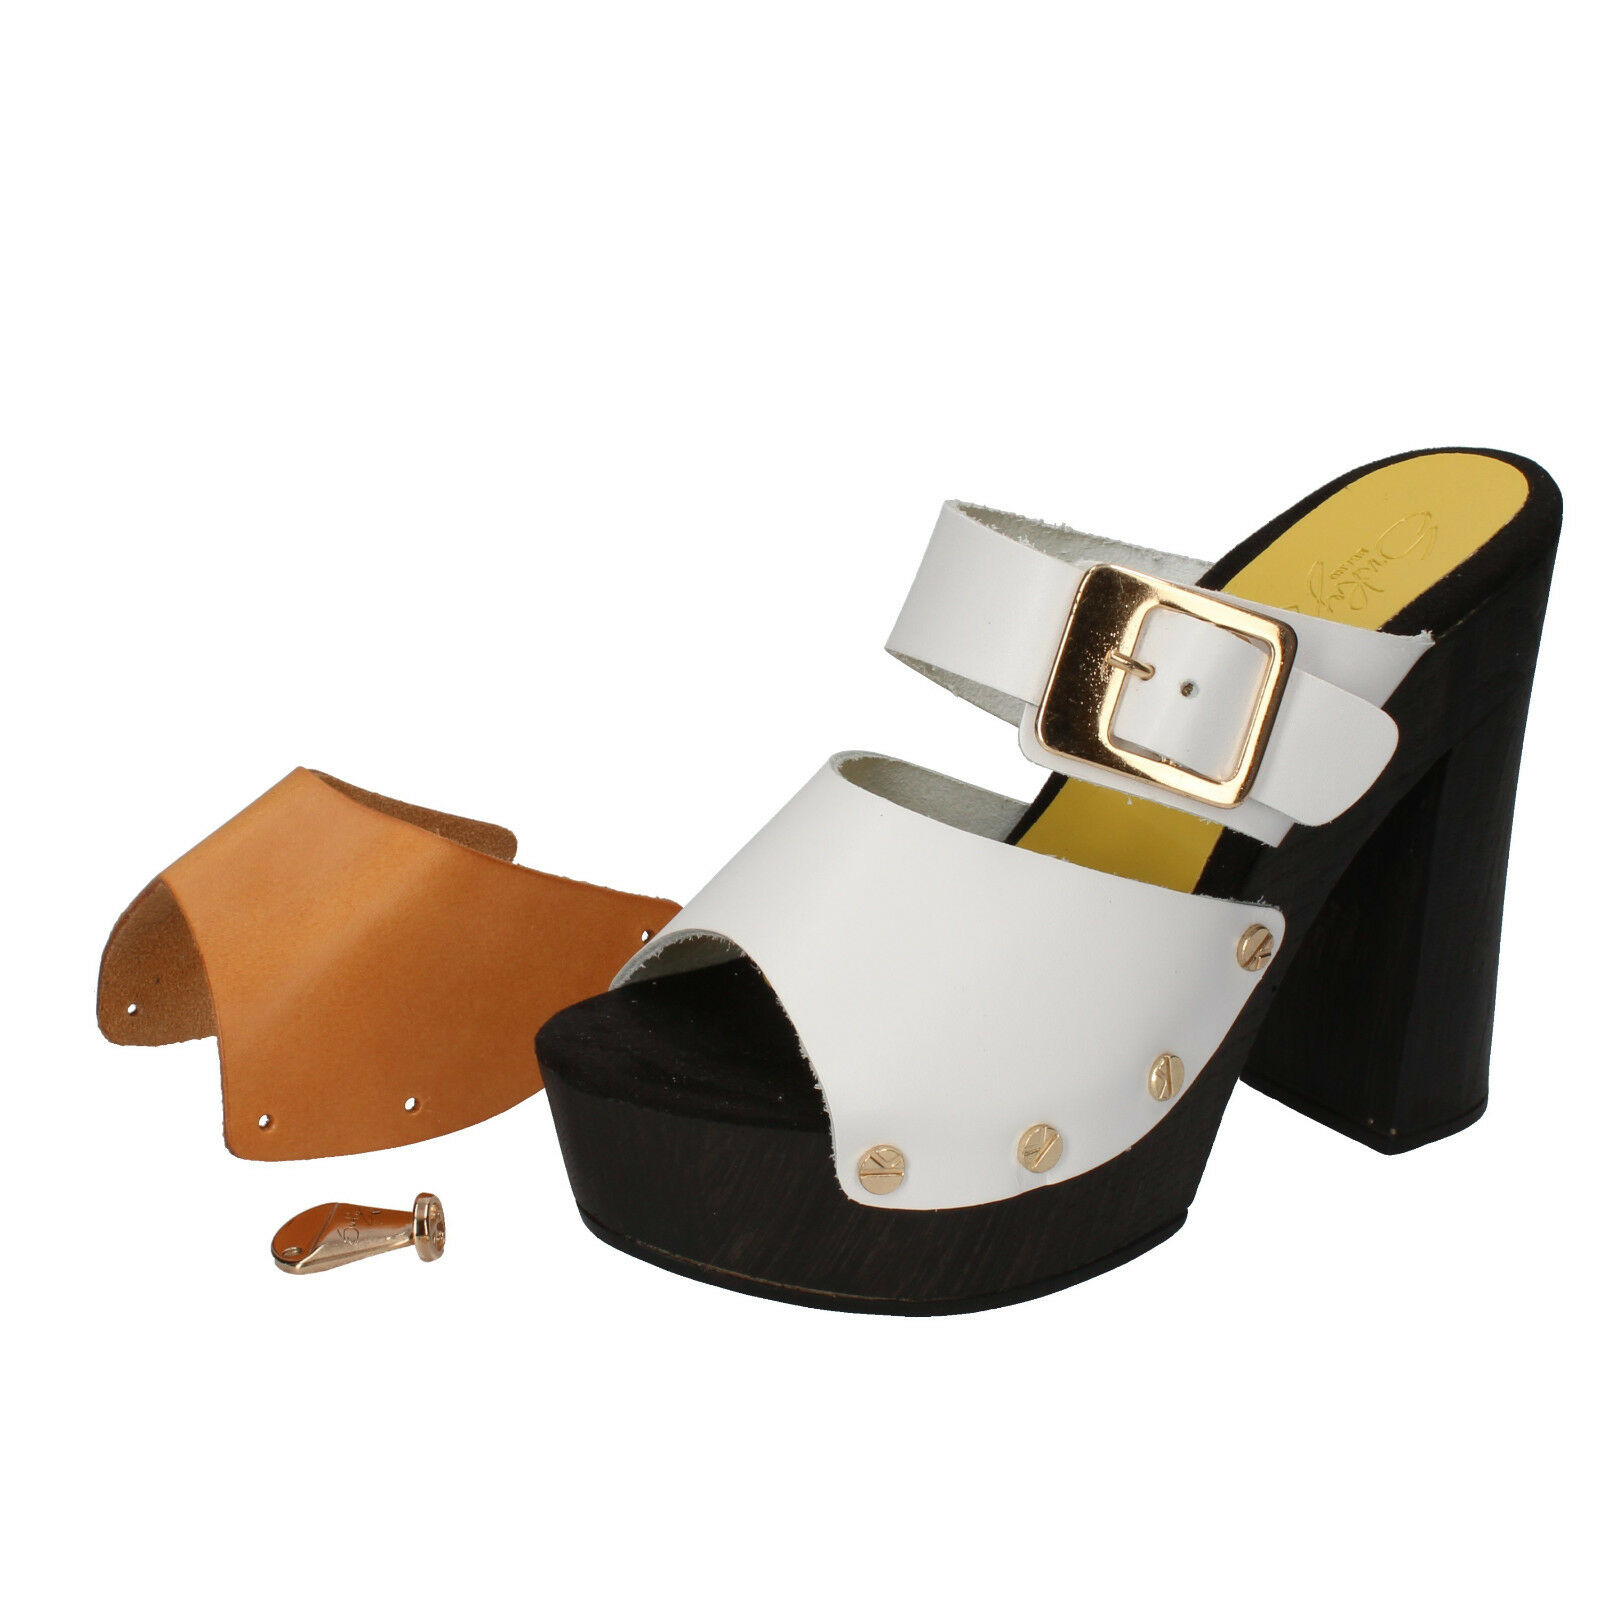 Women's shoes Suky Brand 38 Sandals White (Leather) Leather ac768-c